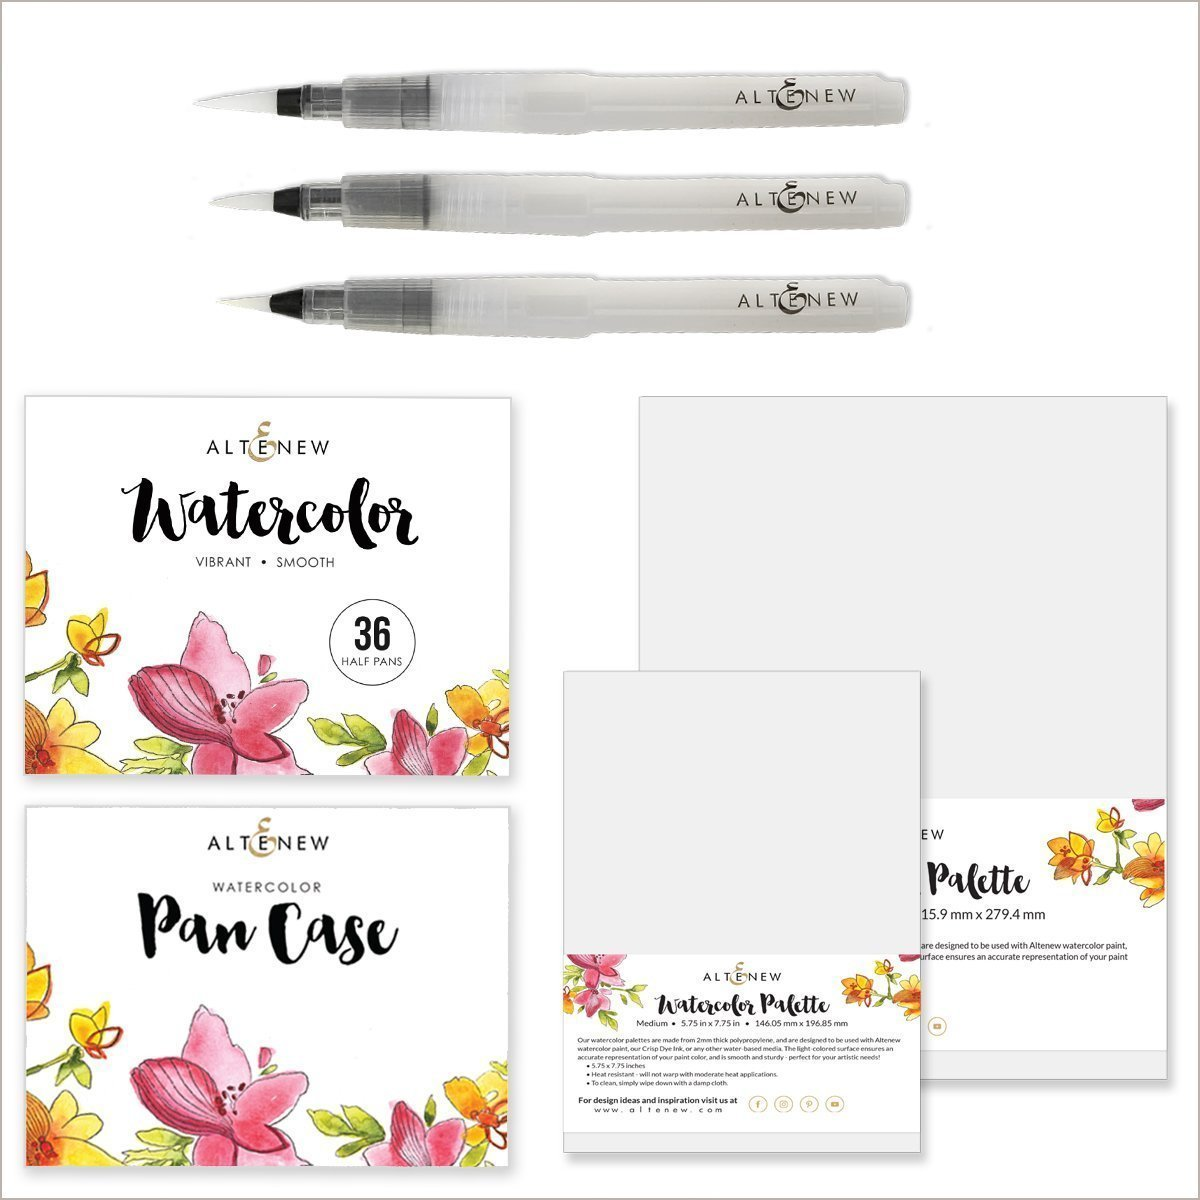 August 2018 Watercolor Pan Set Release